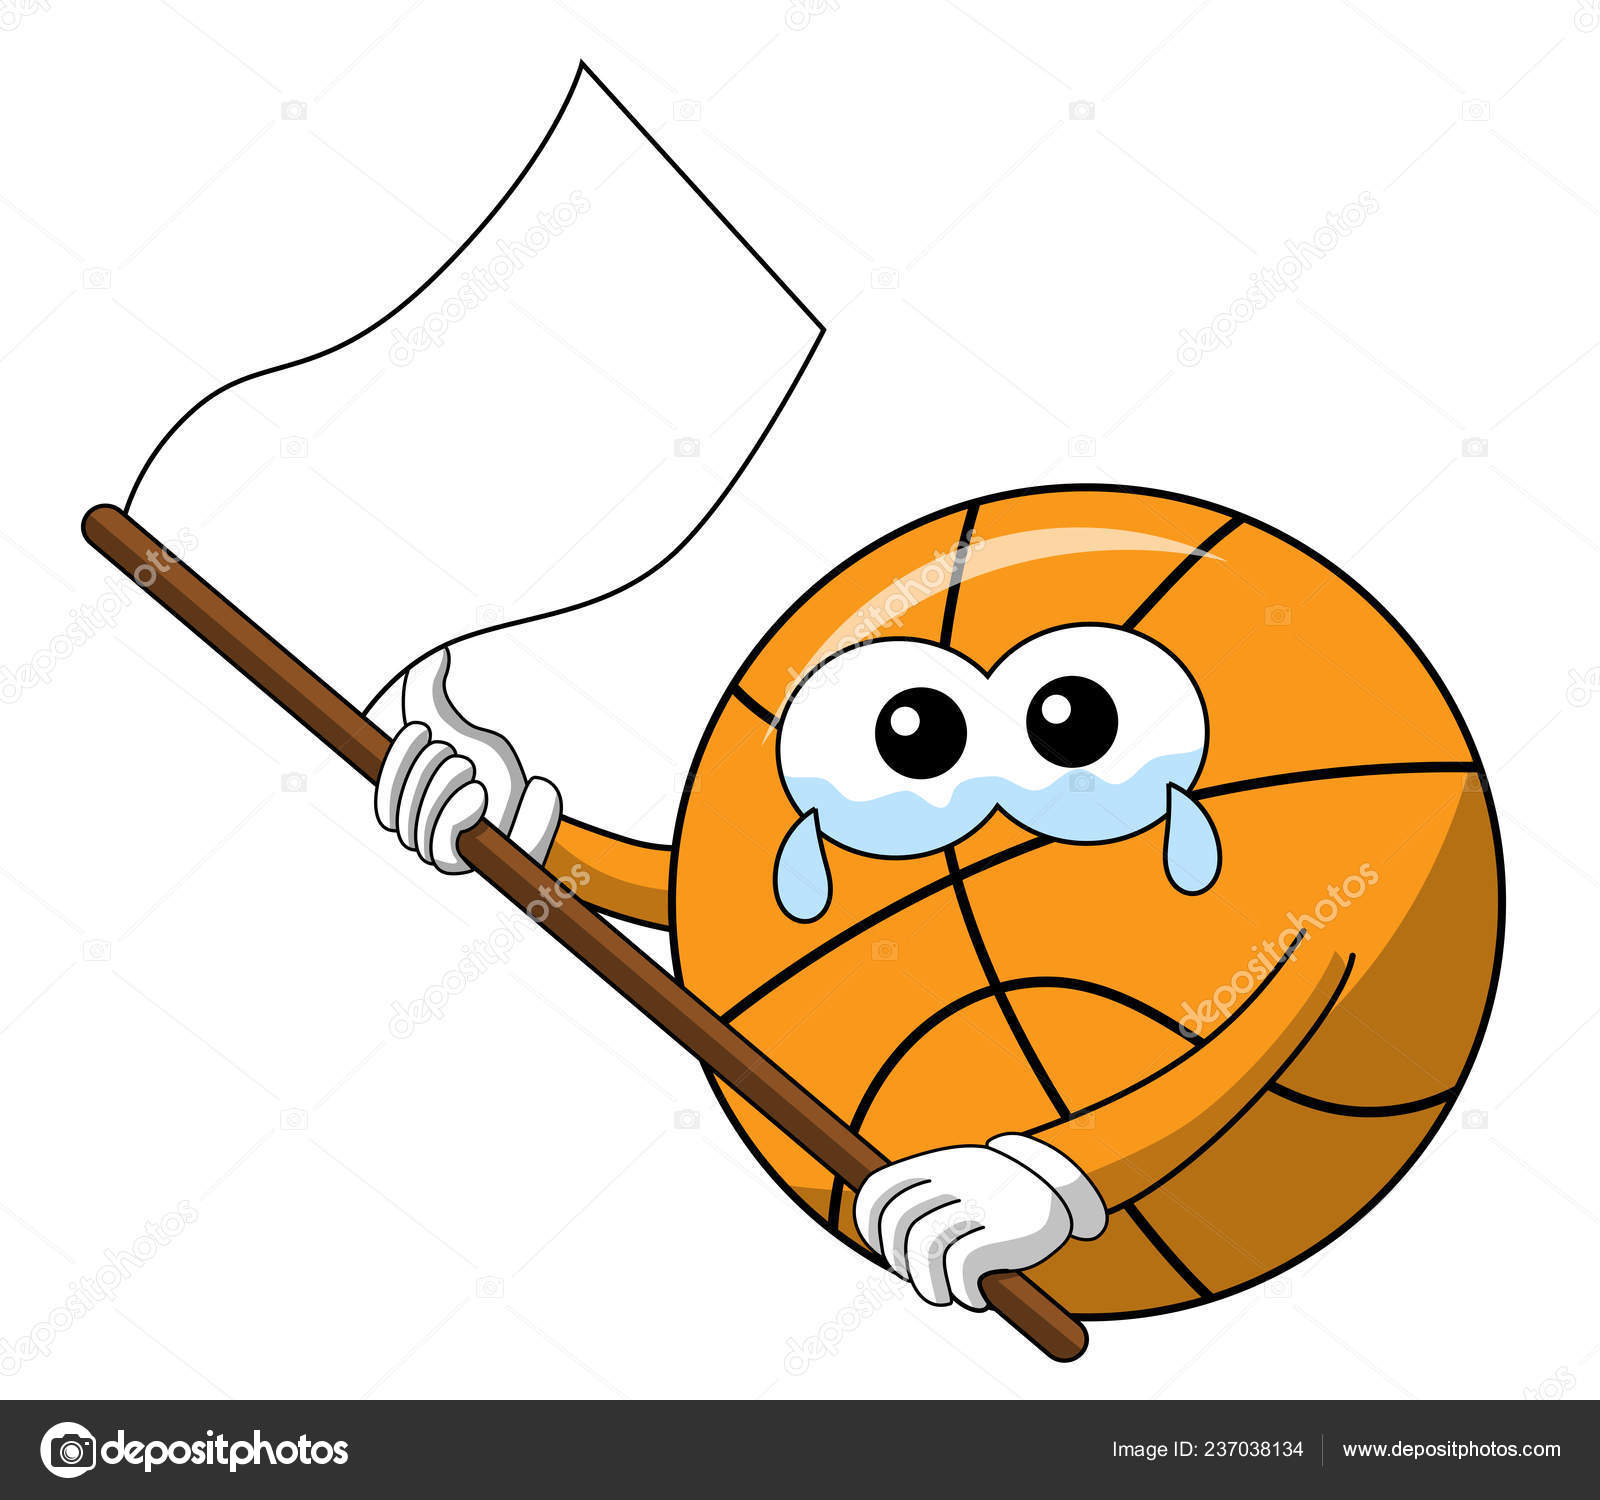 Images Funny White Flag Basketball Ball Cartoon Funny Character Crying White Flag Waving Sad Stock Vector C Canbedone 237038134